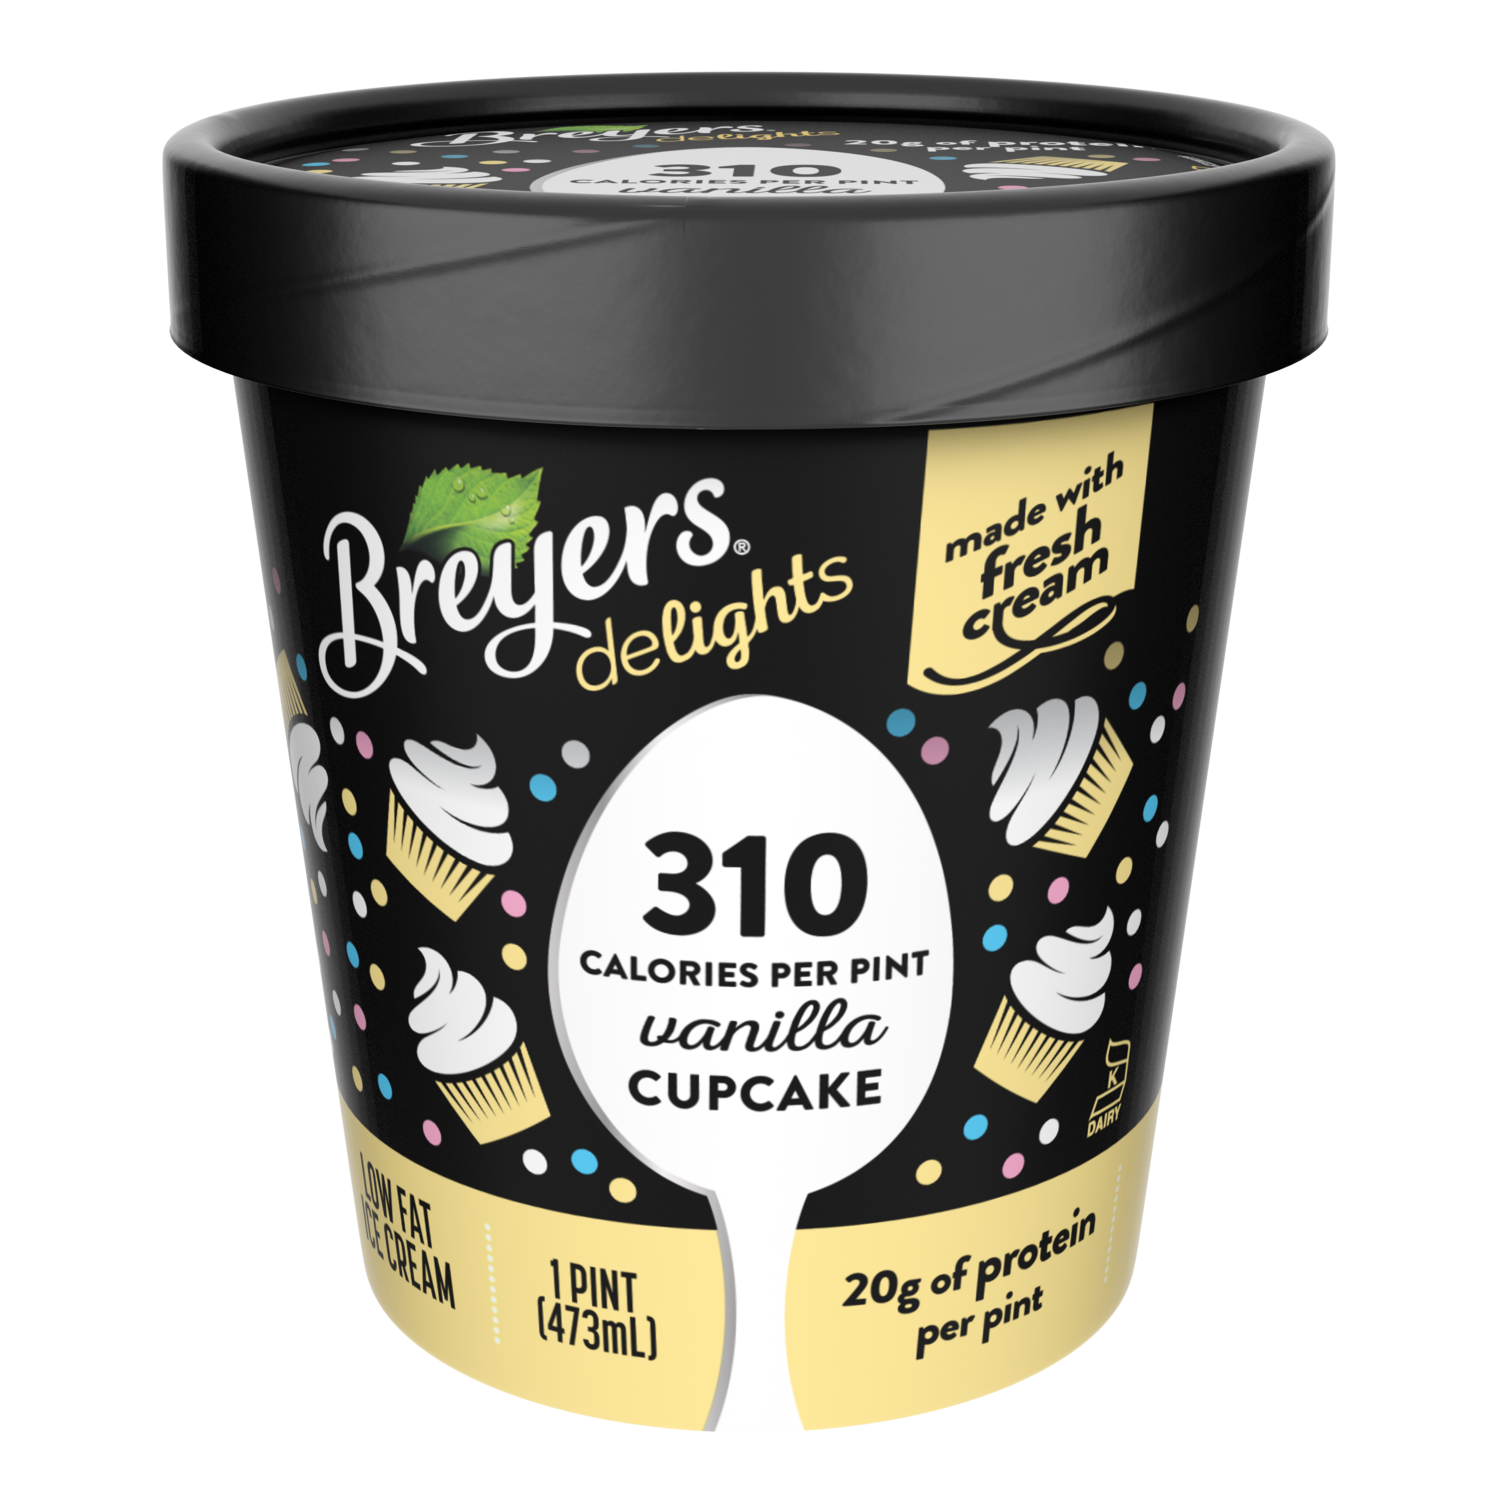 A 16 Ounce Tub Of Breyers Delights Vanilla Cupcake Front Pack